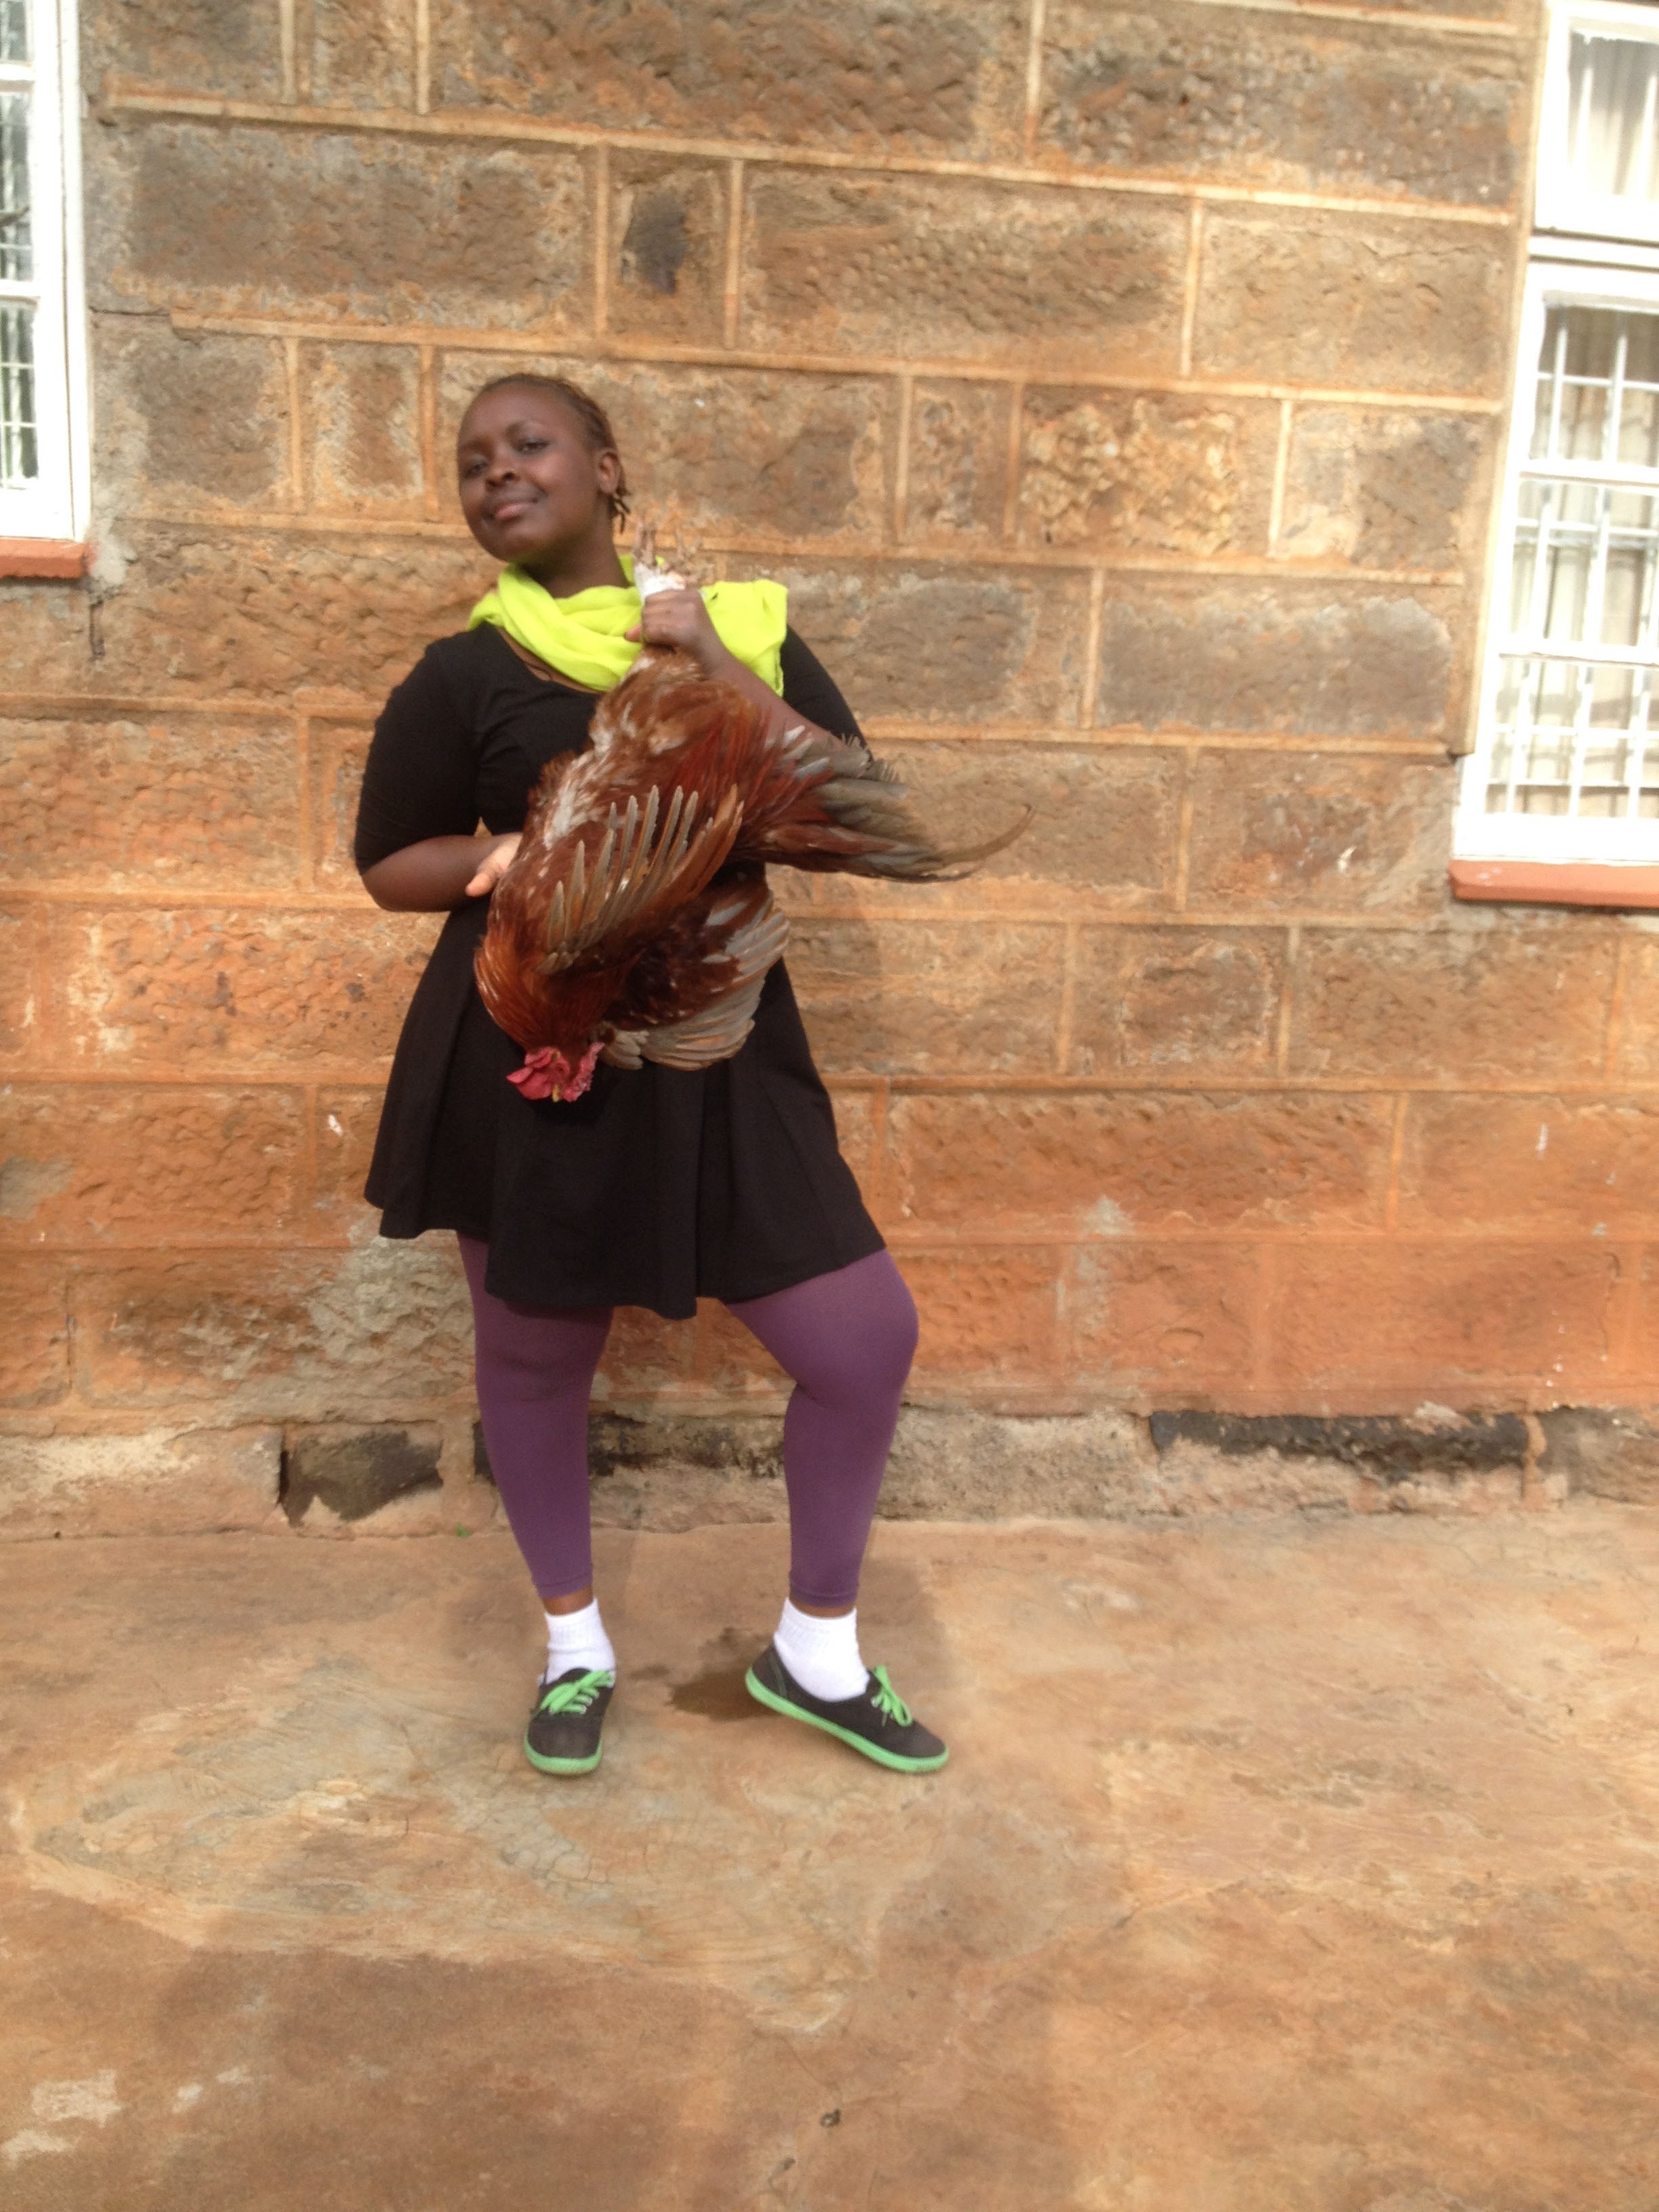 Martha poses with a chicken she bought at the market for our Dirty Bird episode.